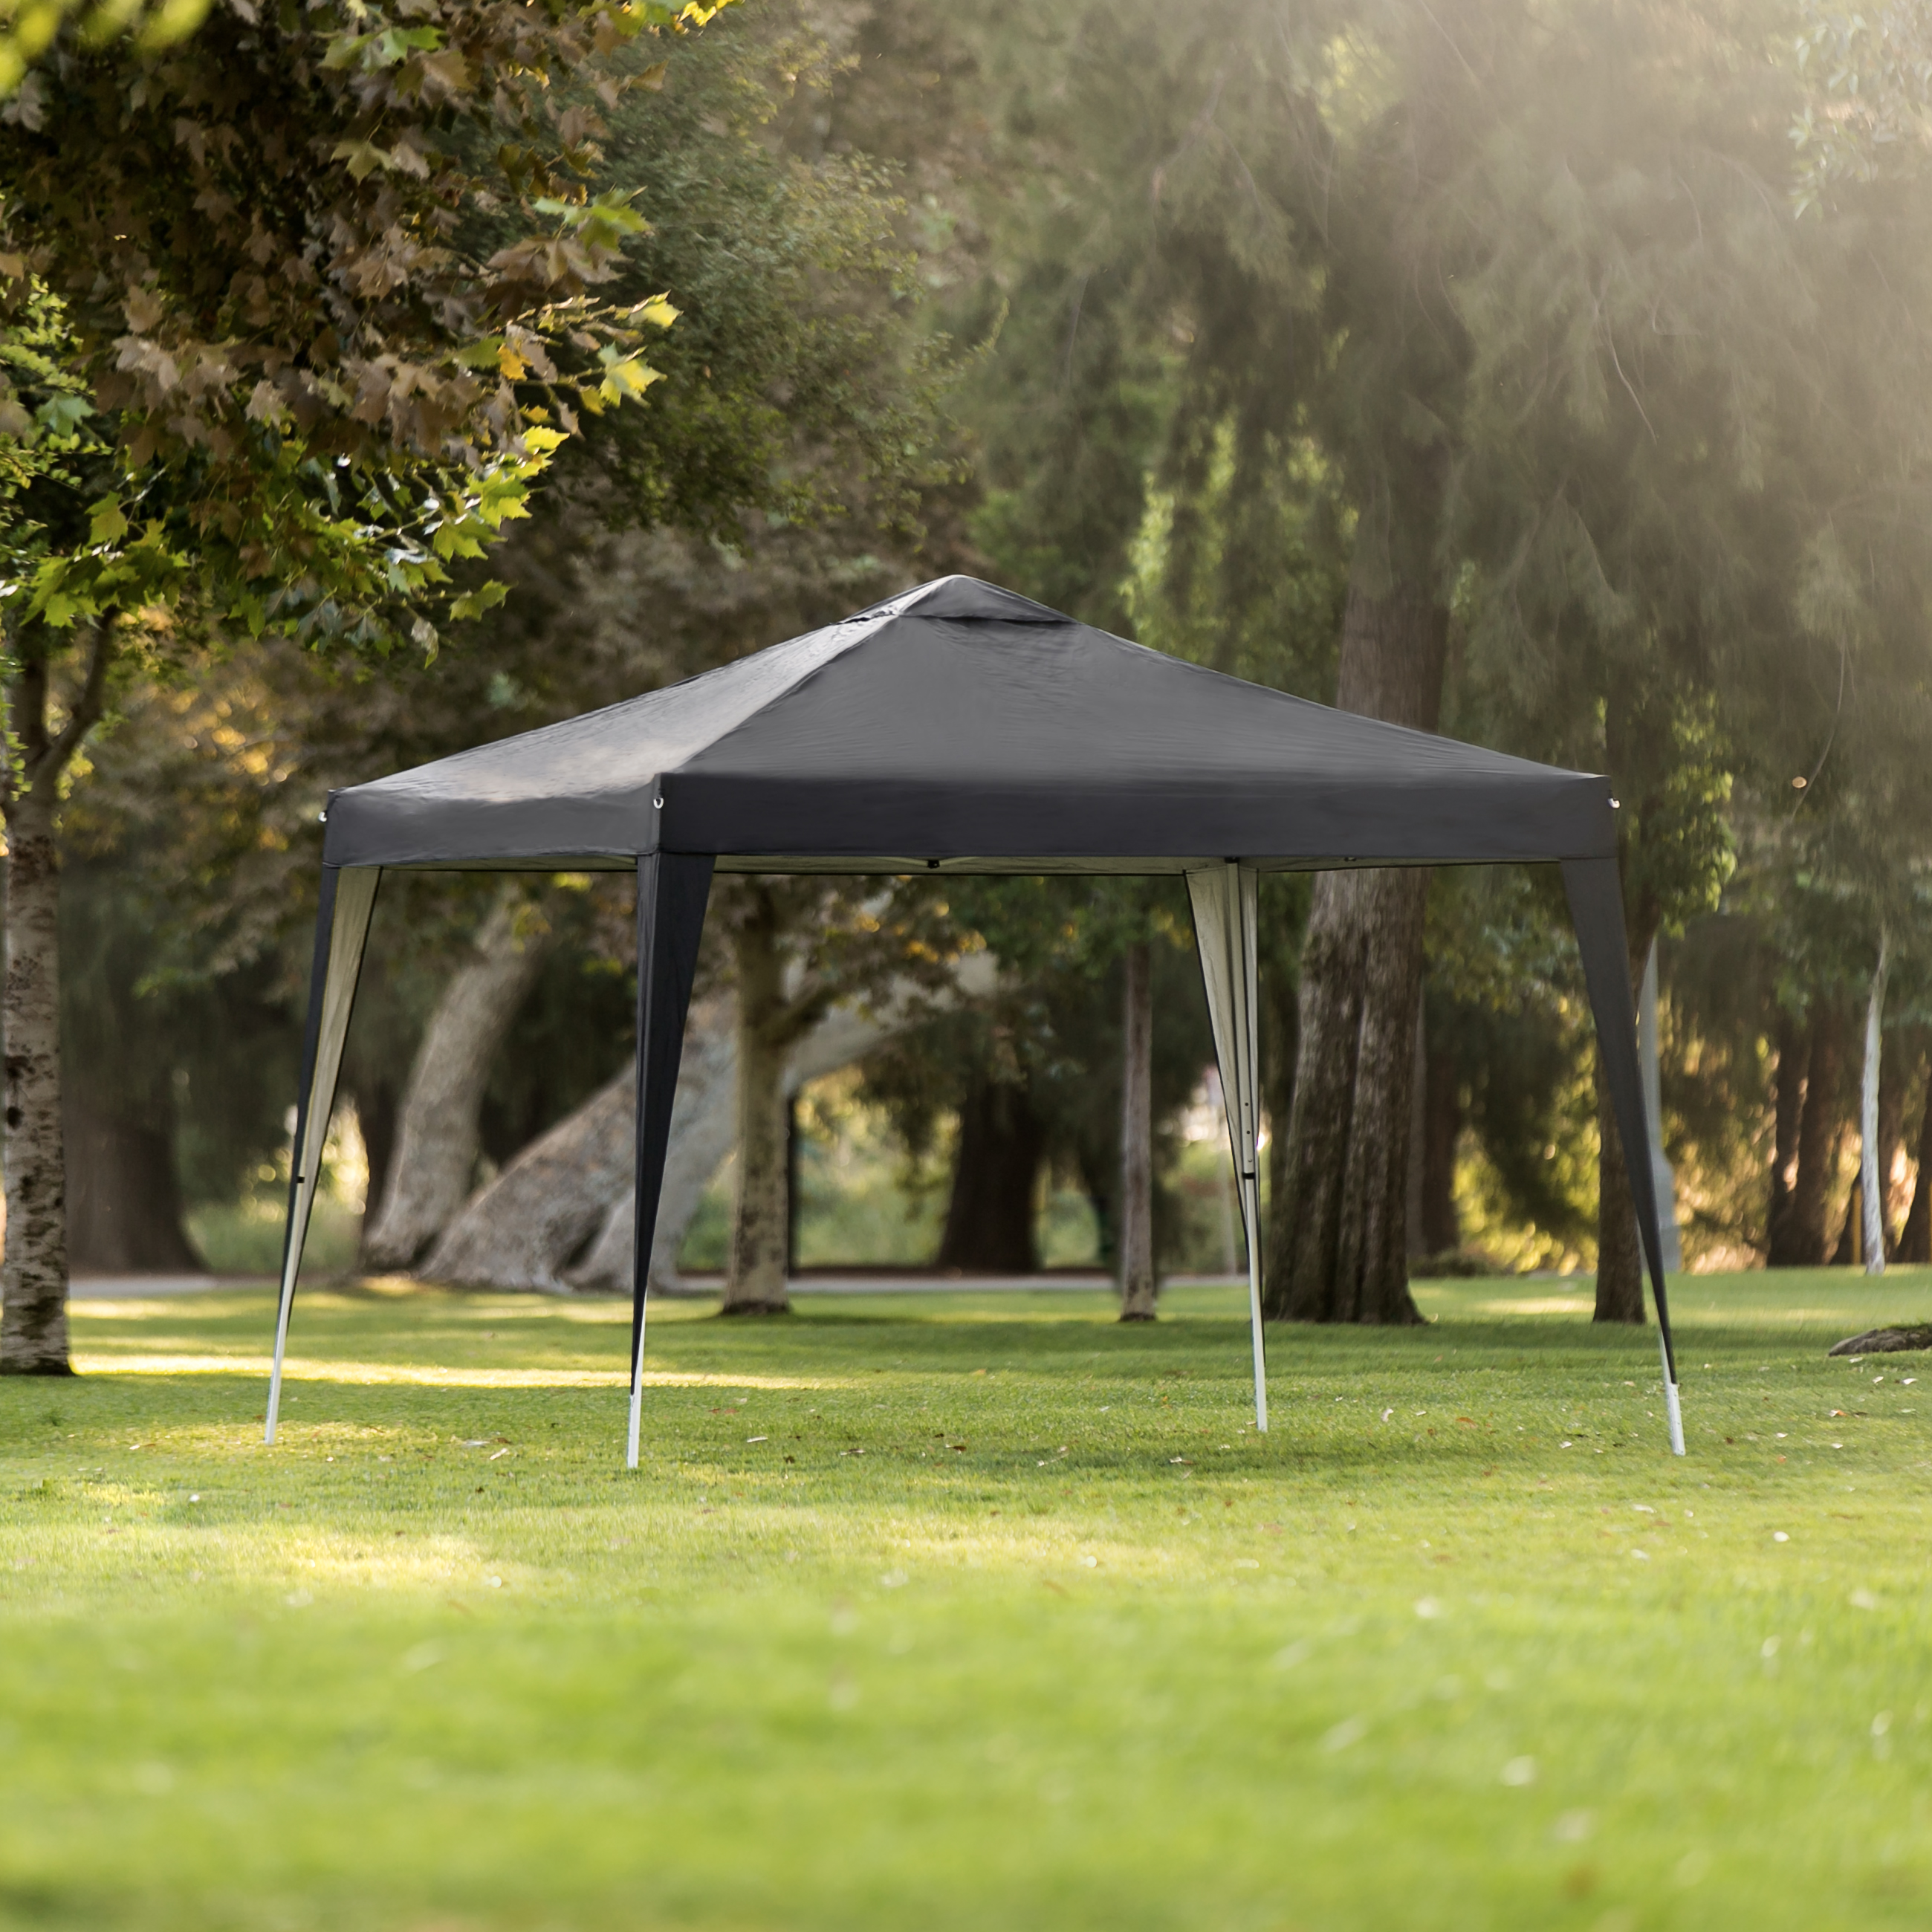 Best Choice Products 10x10ft Portable Lightweight Pop Up Canopy w/ Carrying Bag - Black